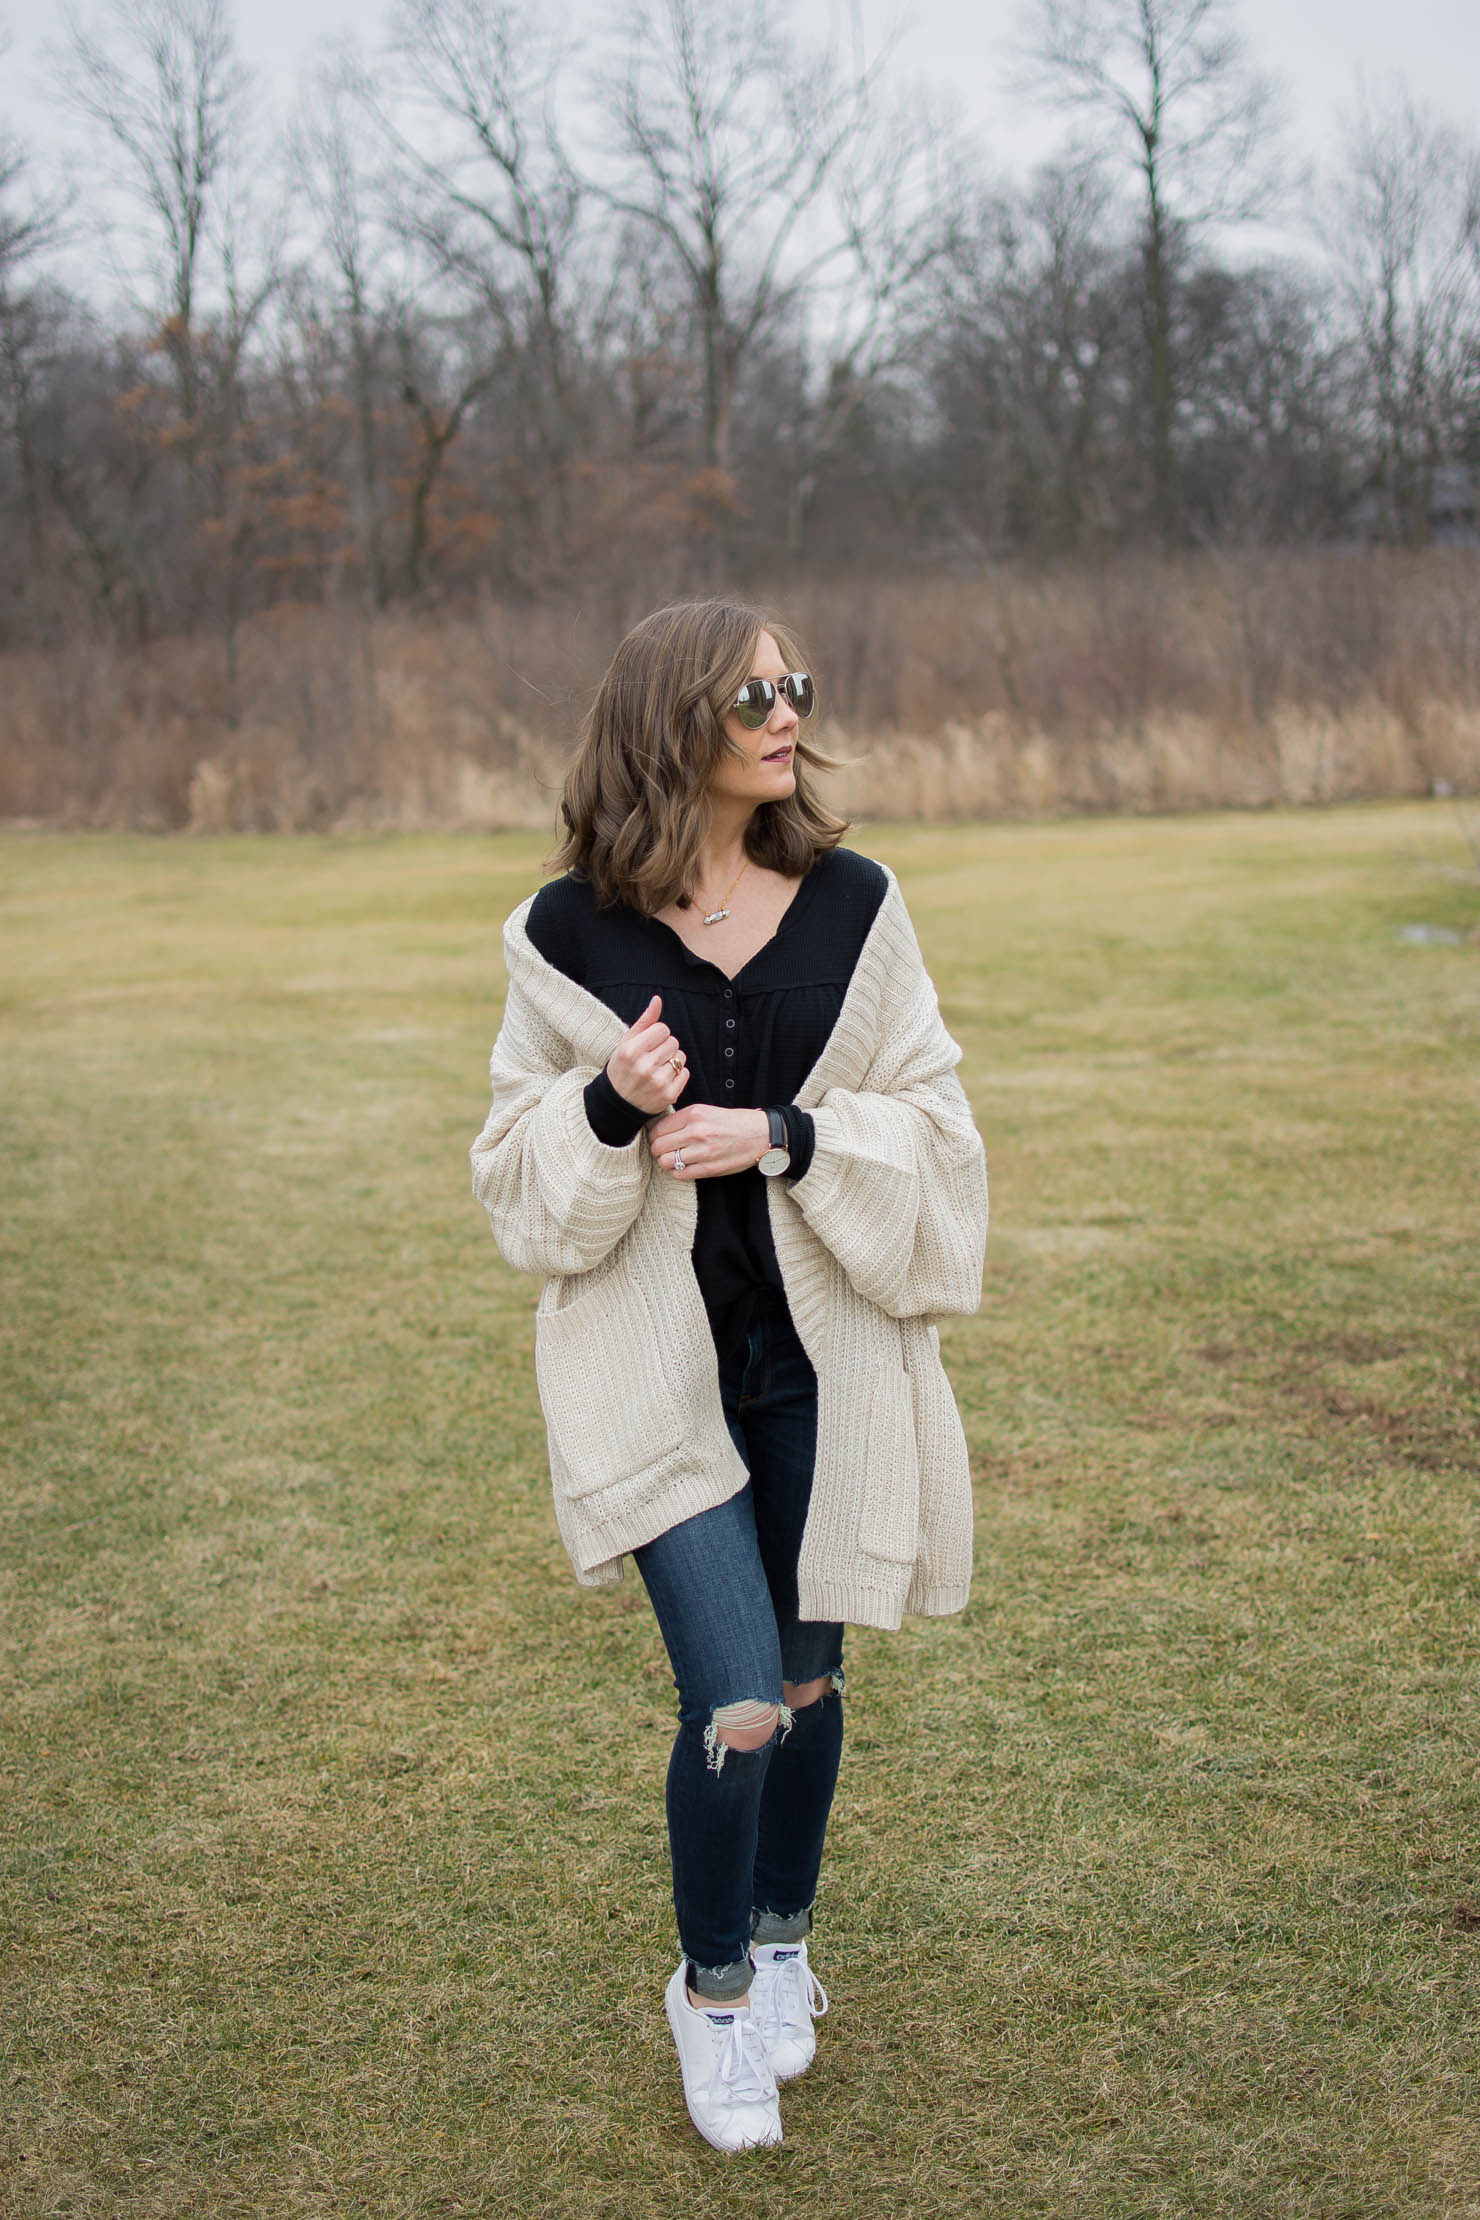 searching for spring, transitional spring wardrobe must haves 2018, spring fashion, free people